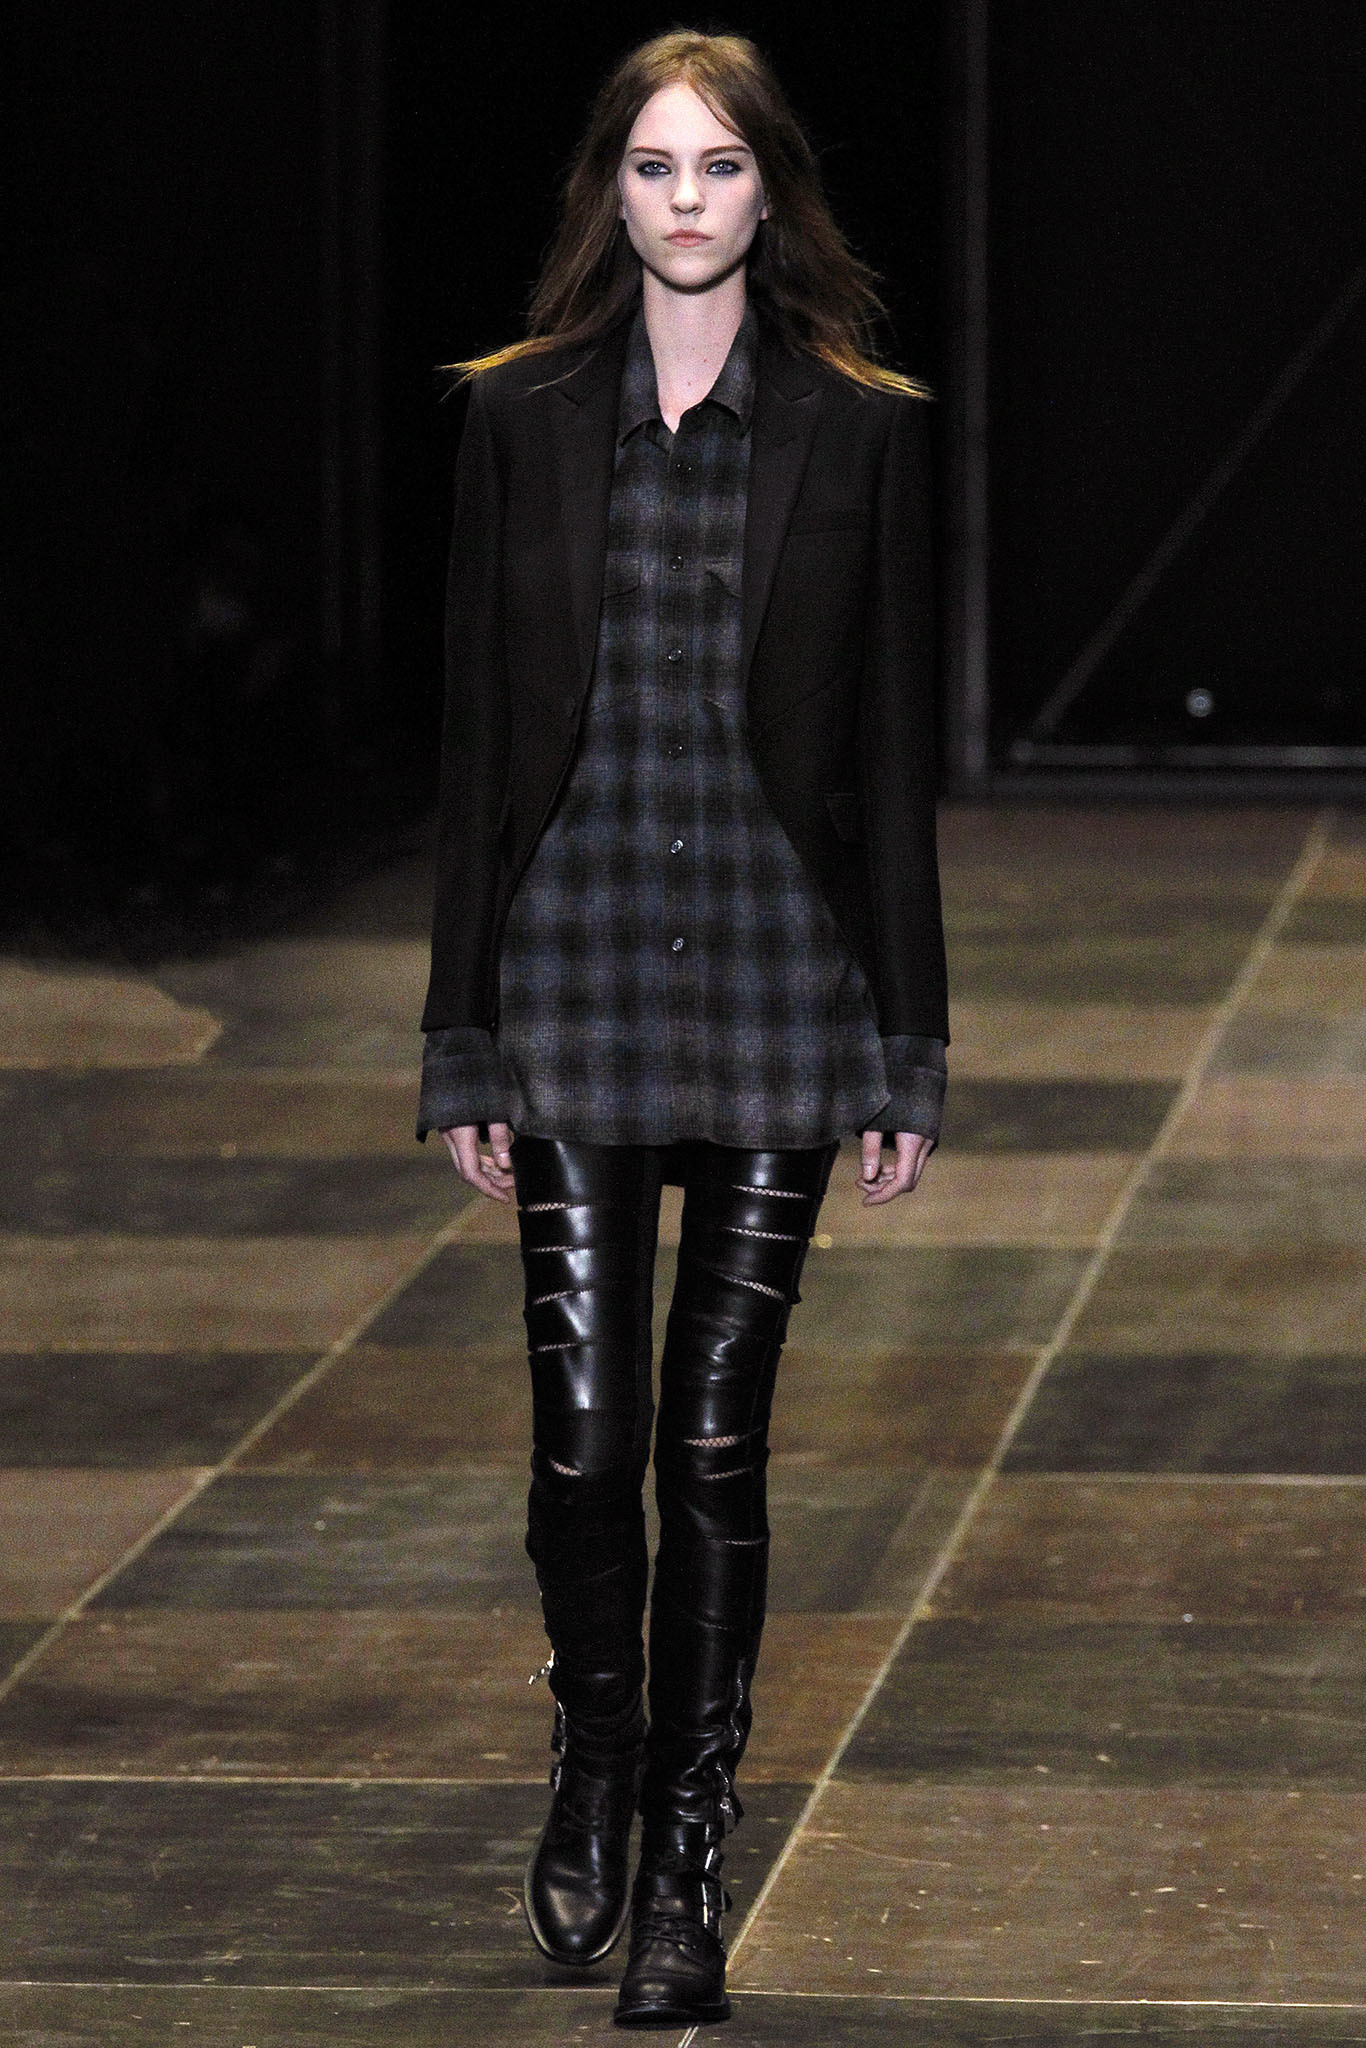 Saint-Laurent-Fall-Winter-2013-2014-Runway-Show-2